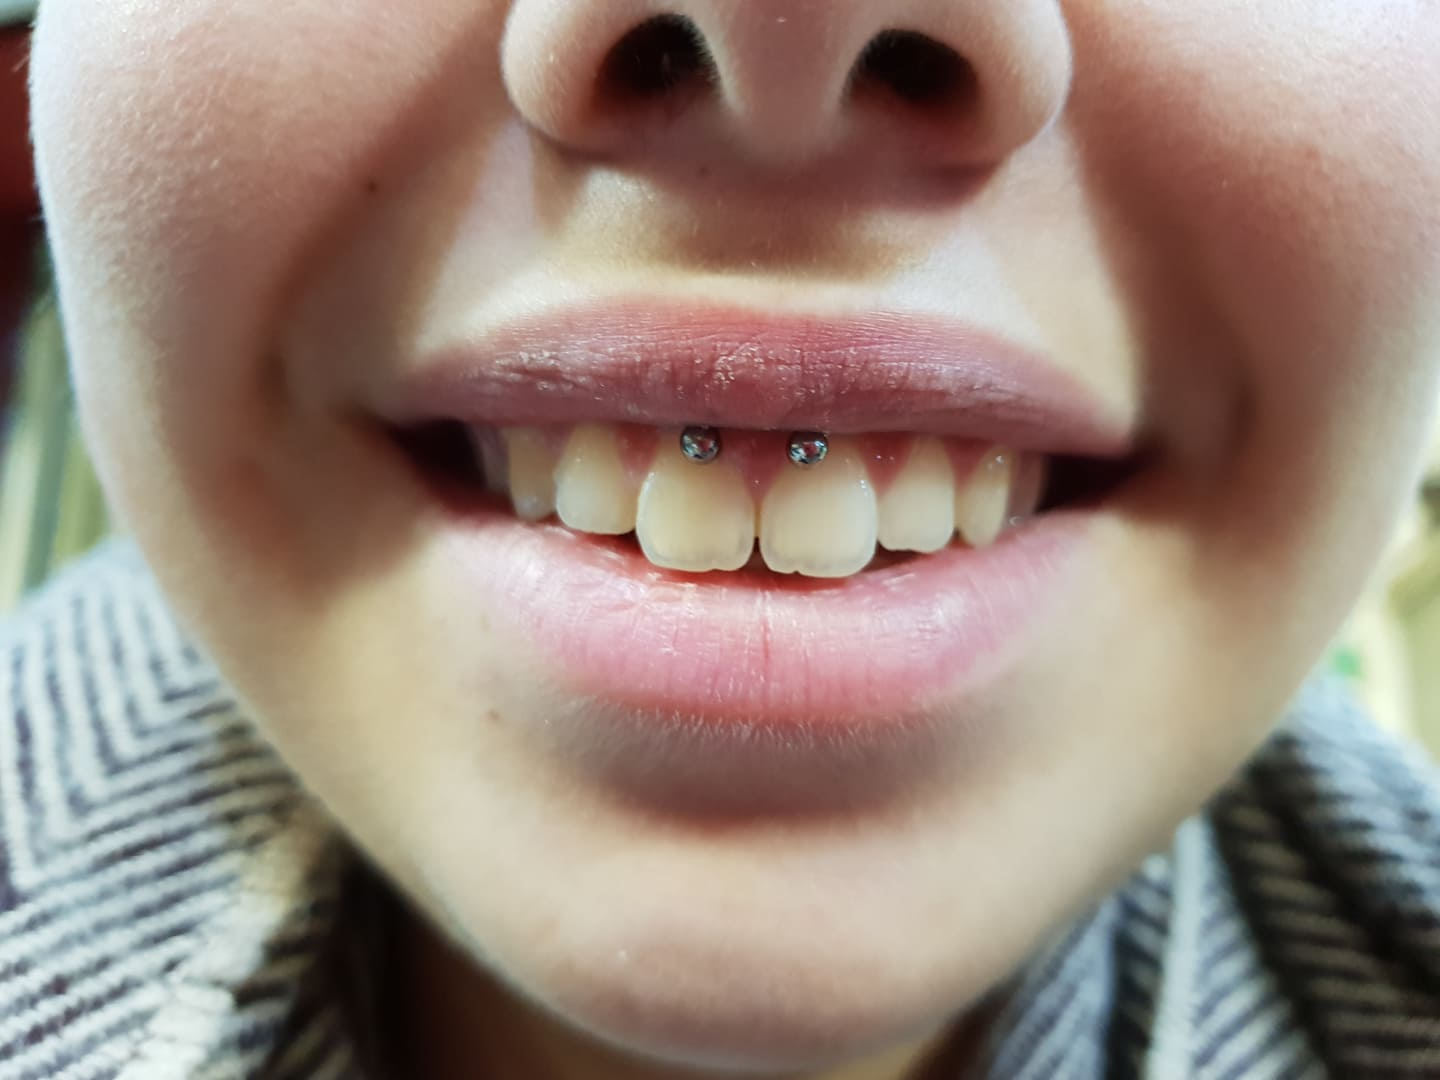 Lip frenulum piercing